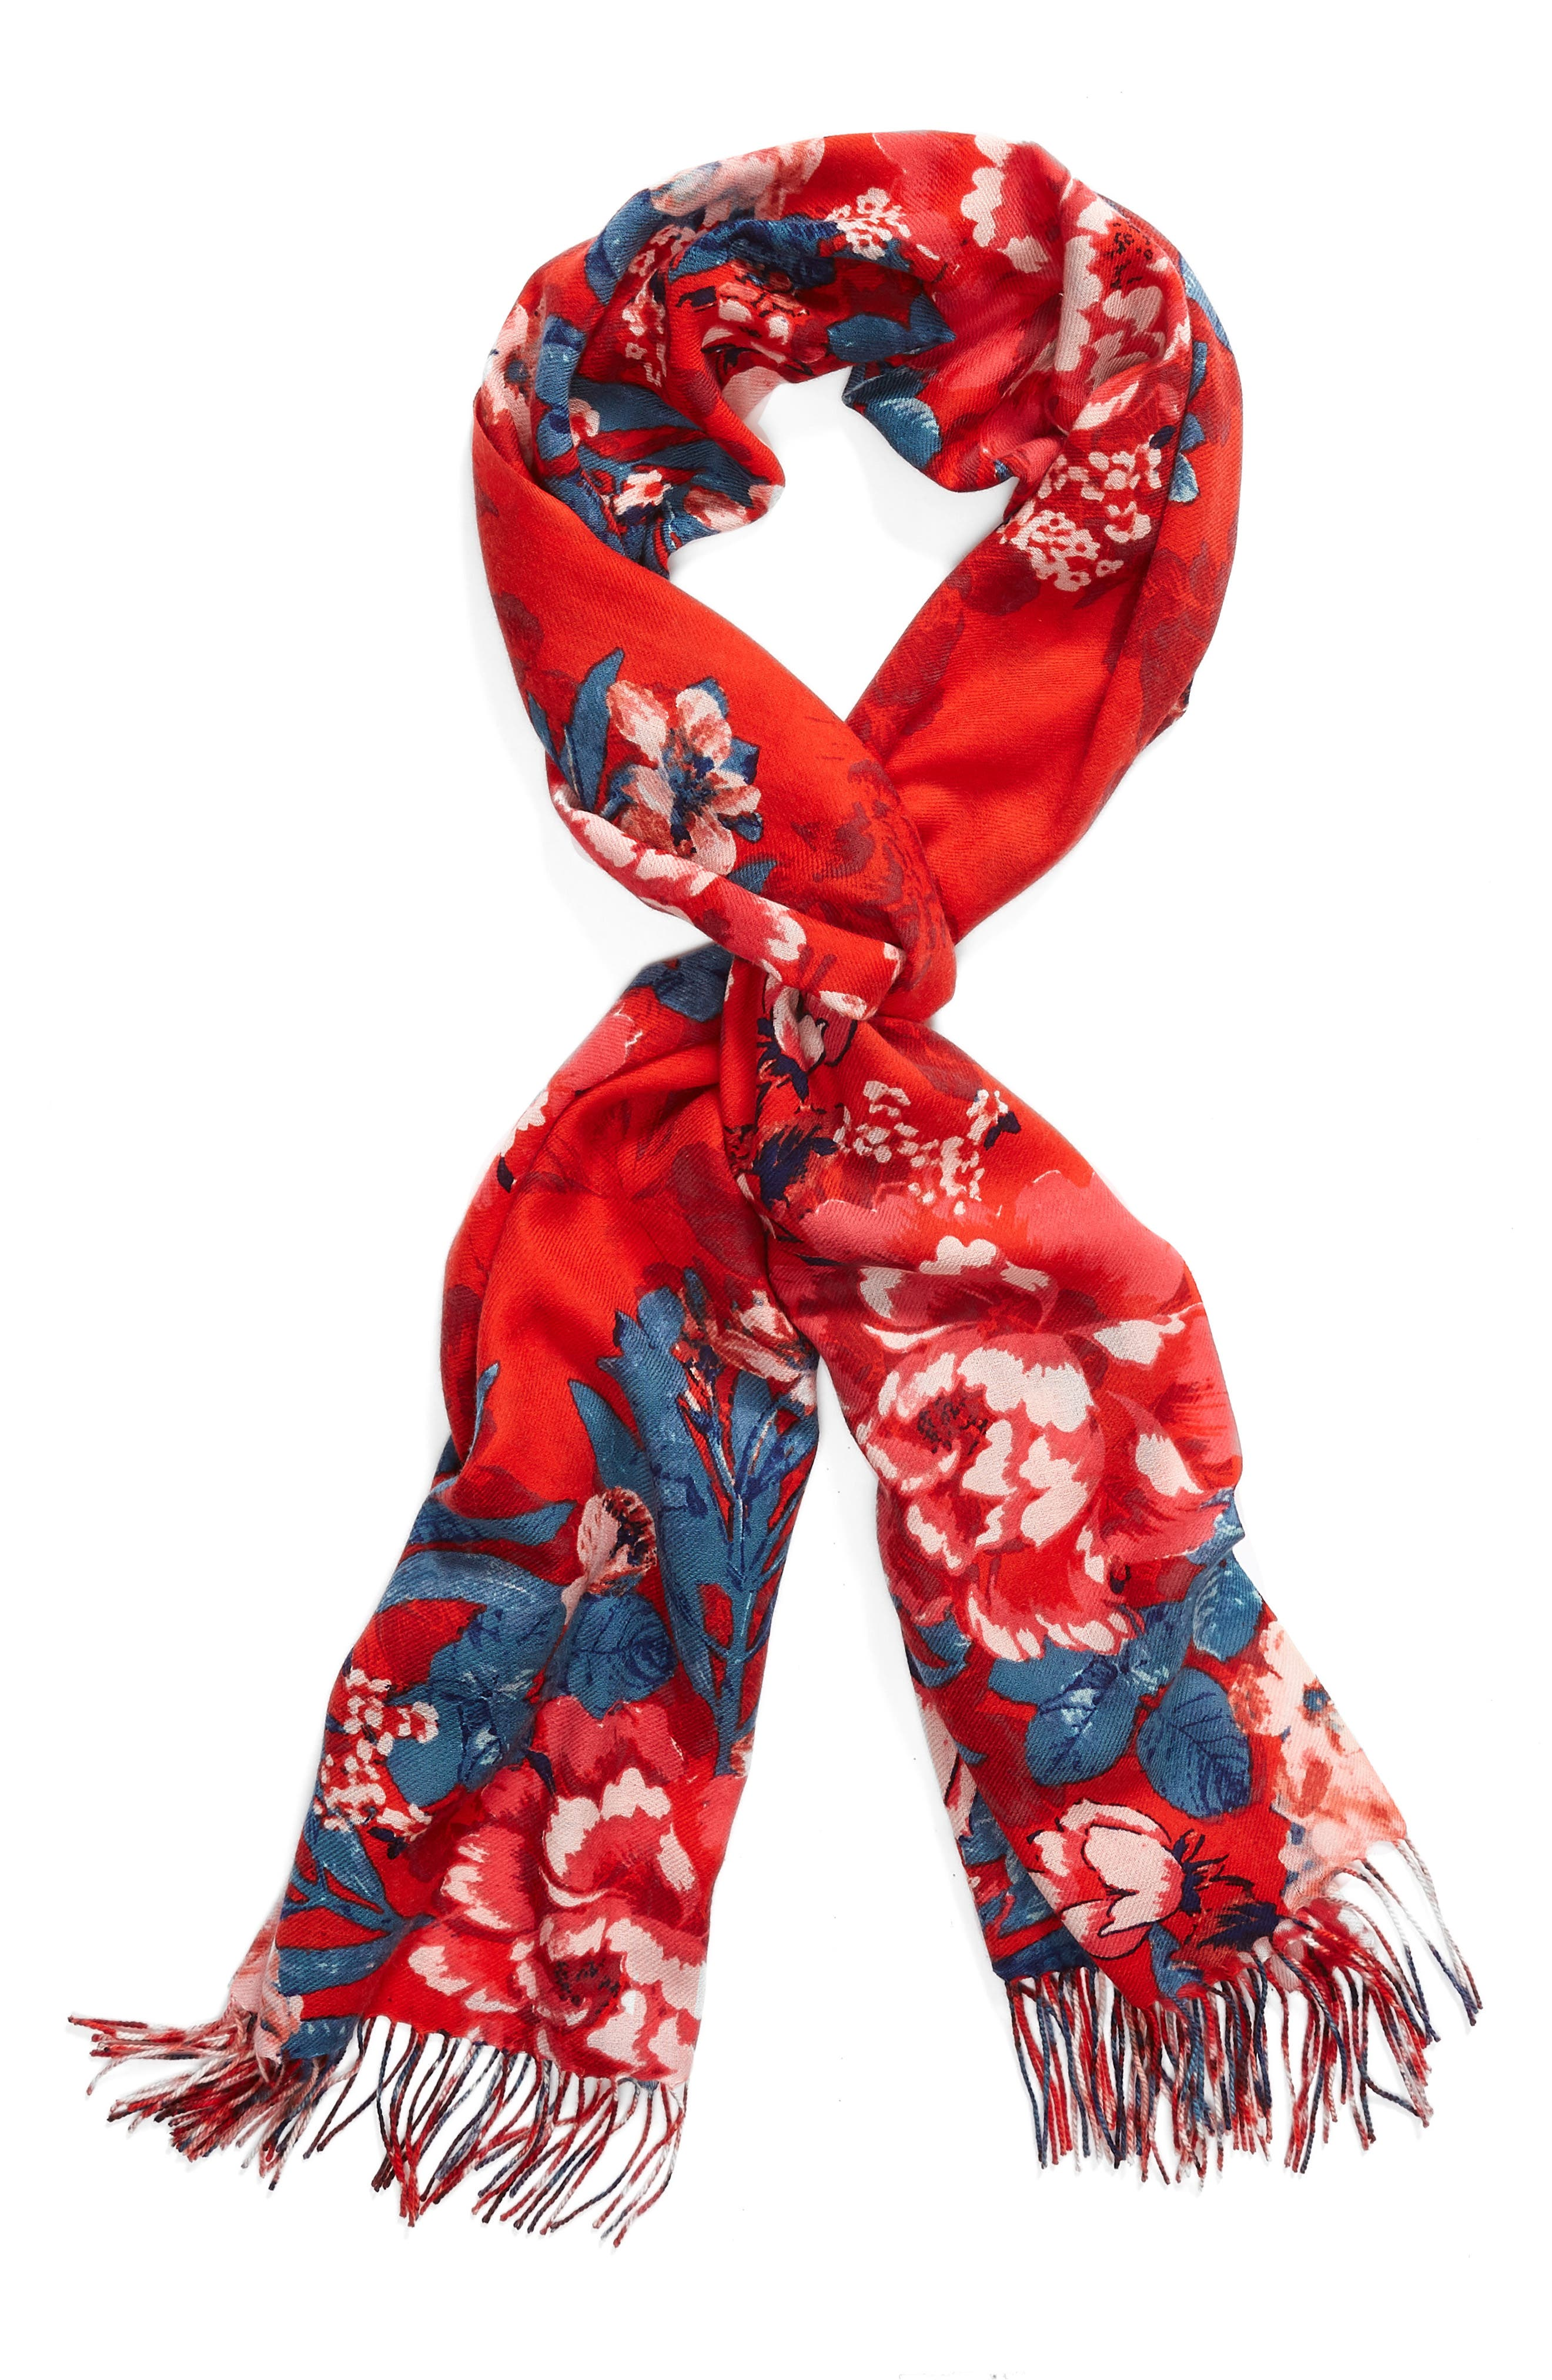 Tissue Print Wool & Cashmere Wrap Scarf,                             Alternate thumbnail 2, color,                             Red Artful Blooms